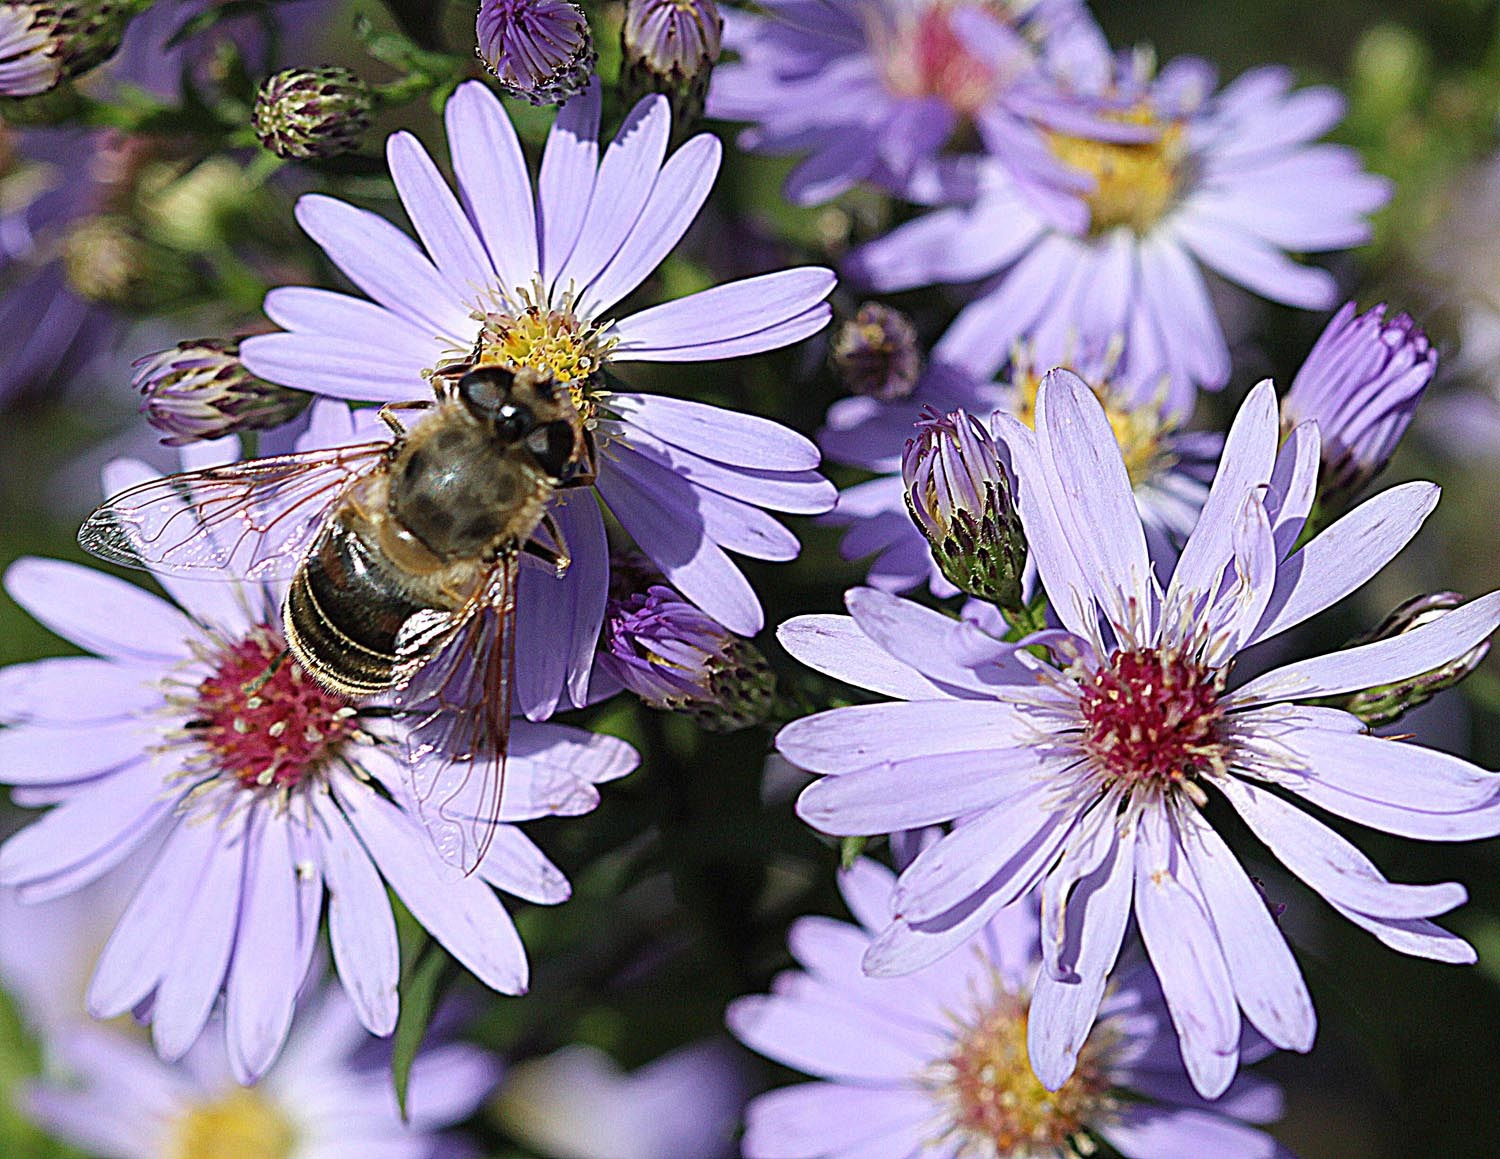 Nature's wonder – bees!